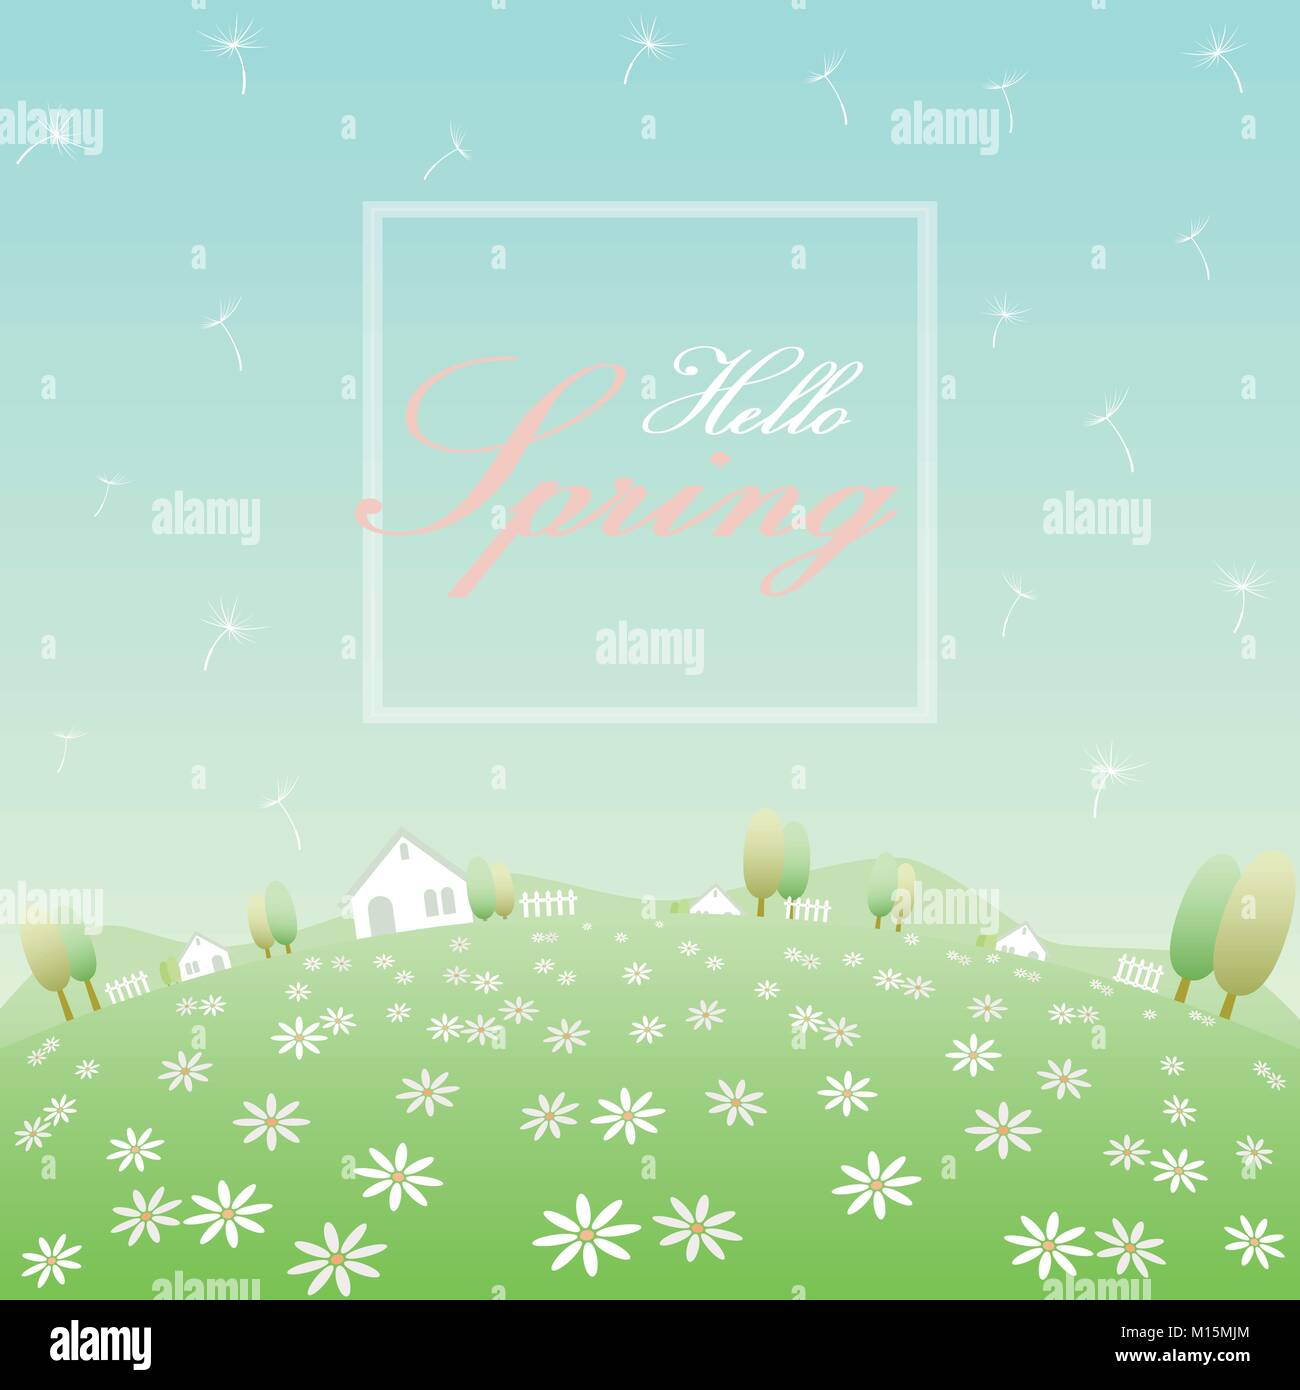 Hello spring text in white frame banner with background of rounded flowers field, white houses, fences, trees, hills, - Stock Vector